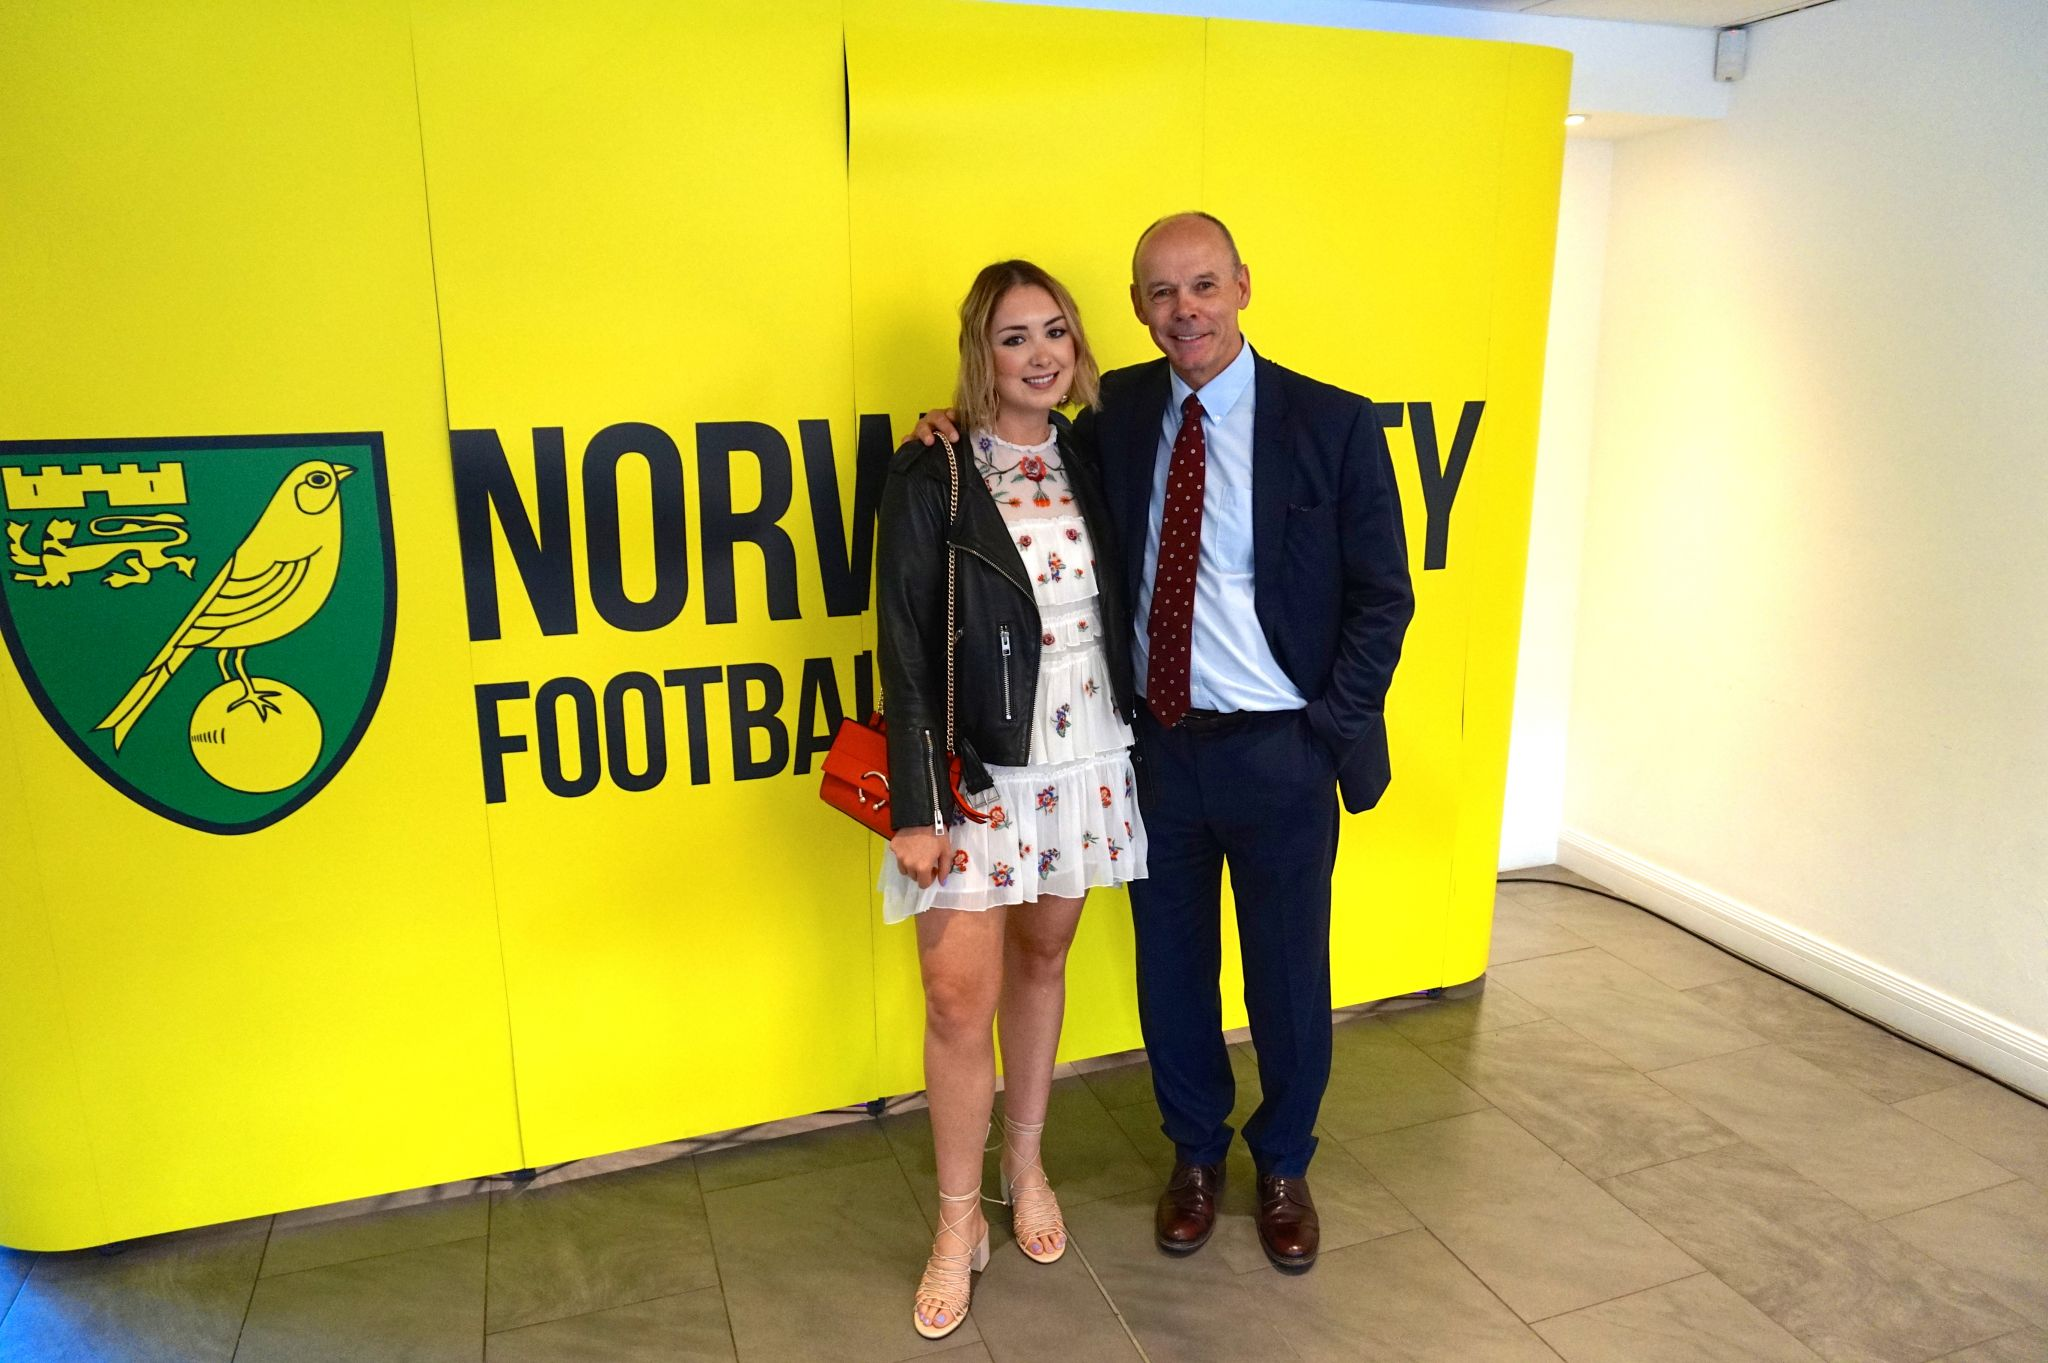 An evening with Sir Clive Woodward